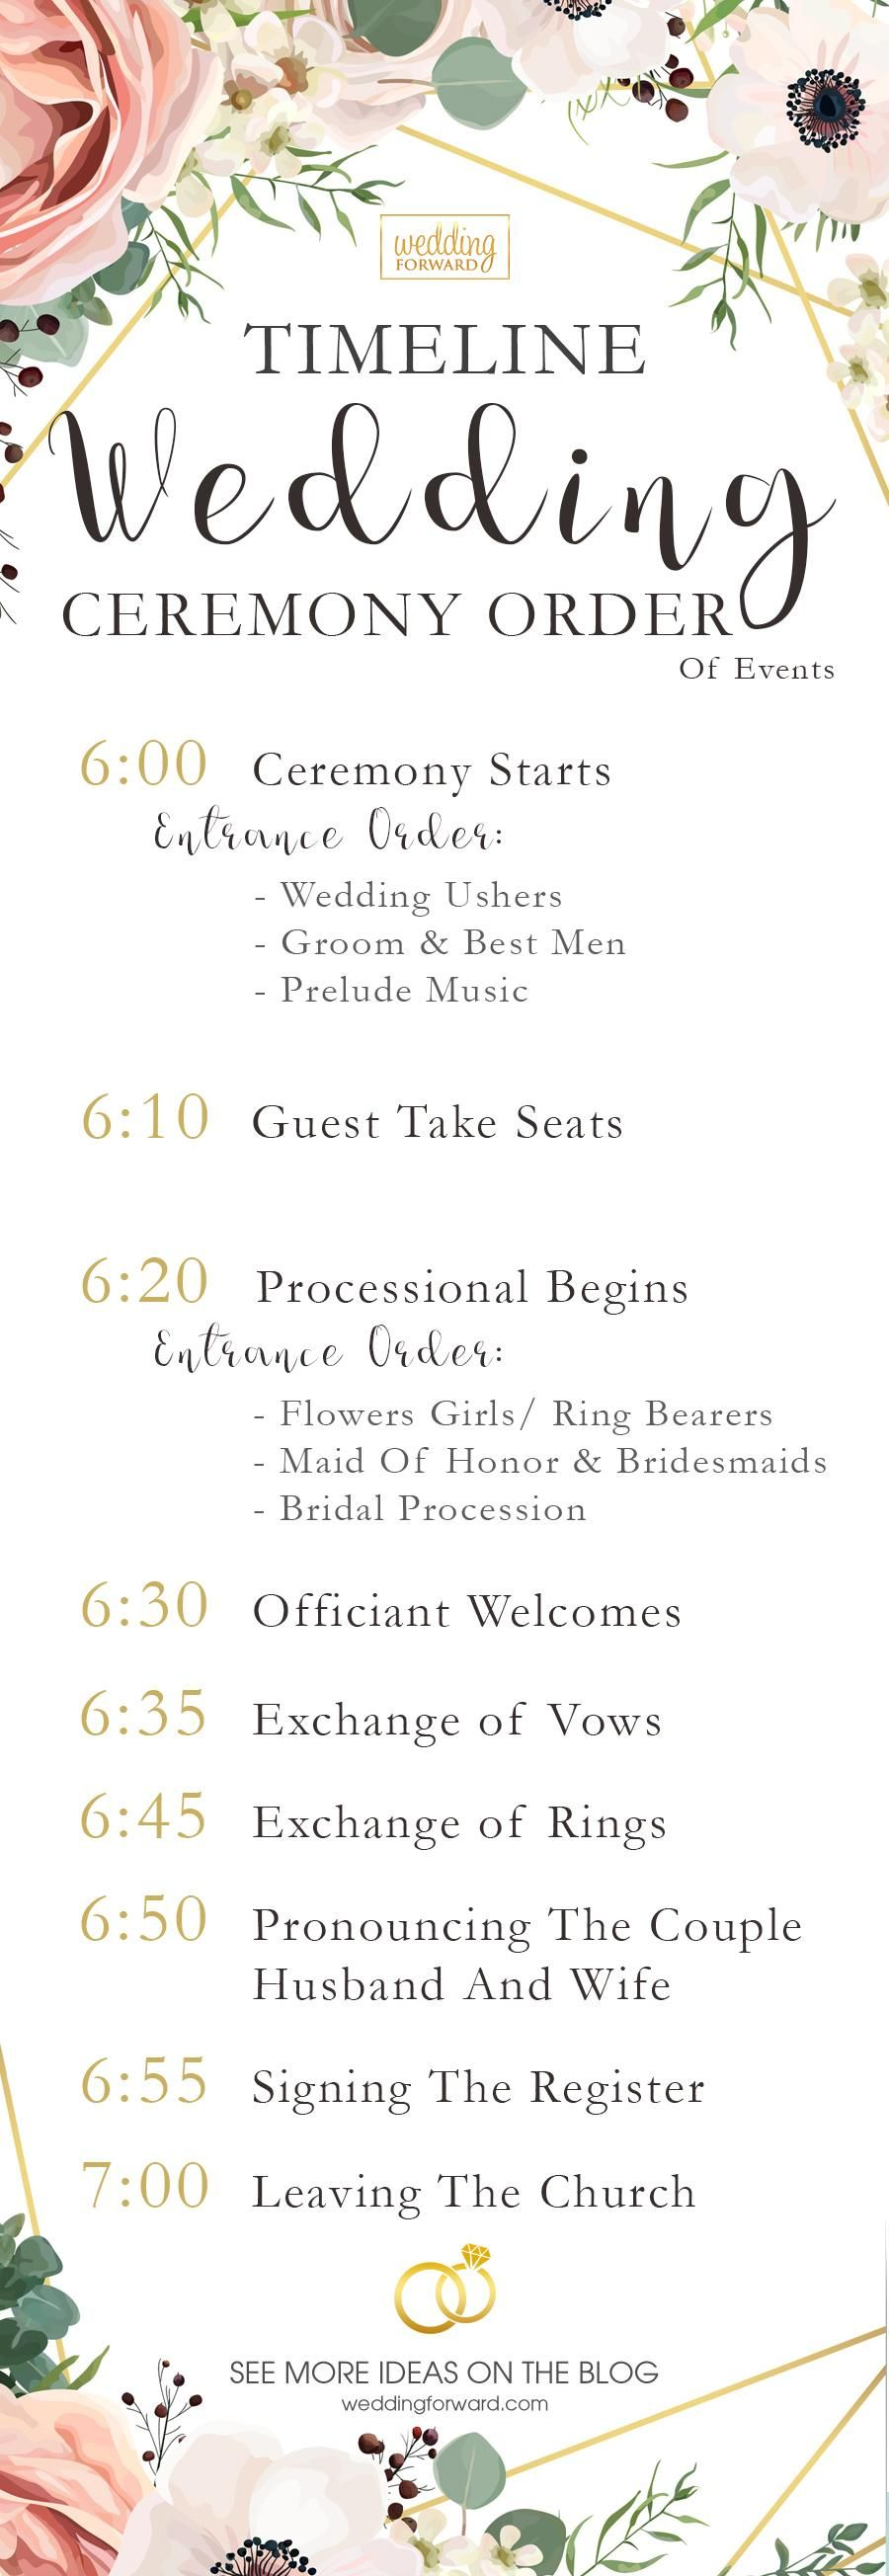 5 Samples Of Your Wedding Ceremony Order Of Events Order Of Wedding Ceremony Wedding Infographic Wedding Order Of Events Wedding order of events template